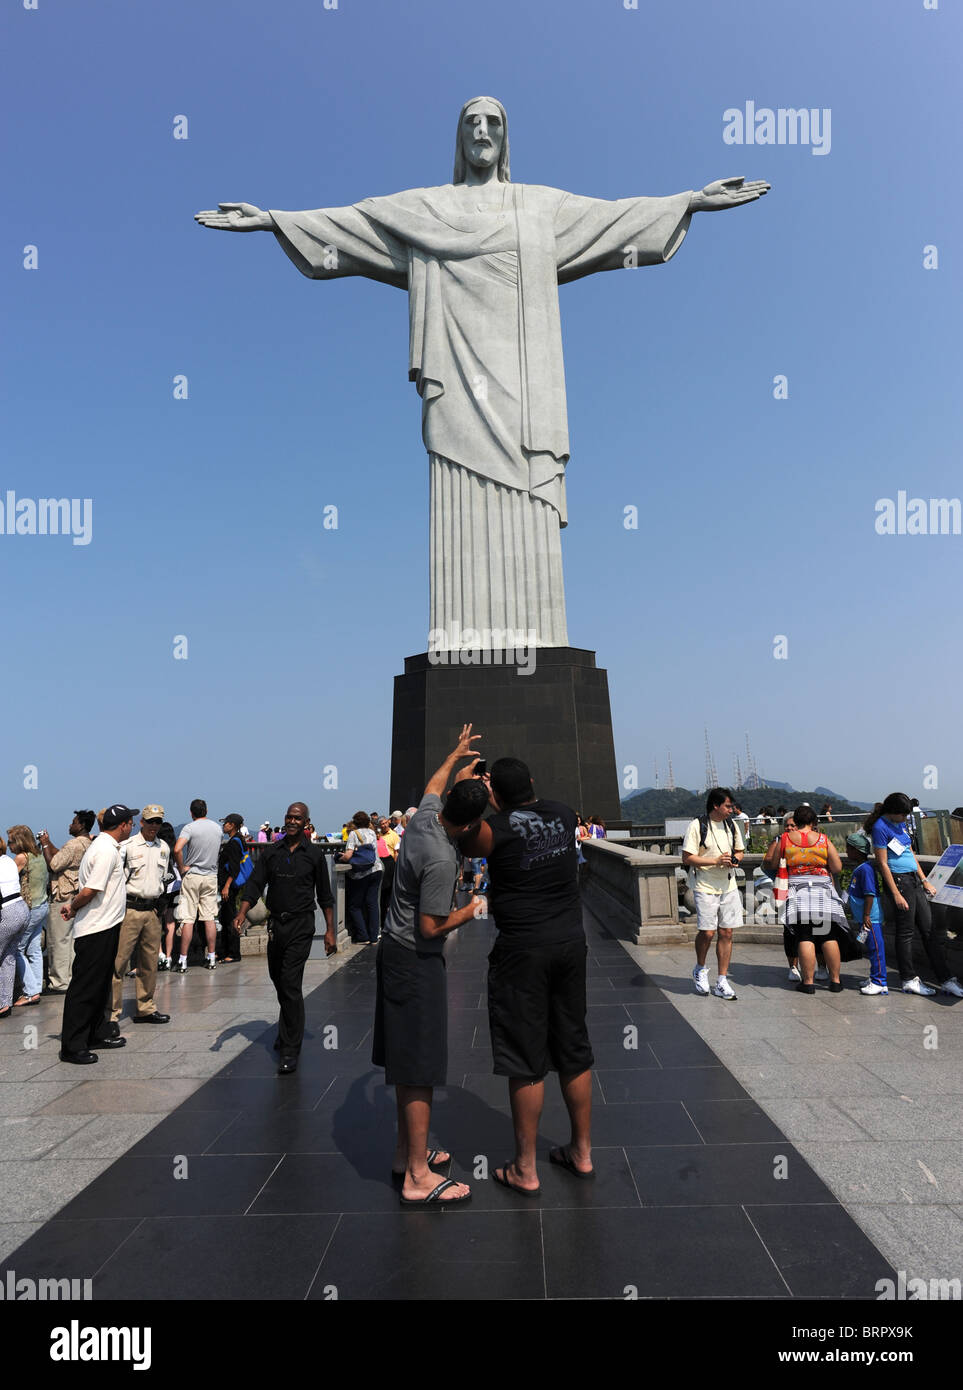 Tourists pose and take pictures in front of the Christ the Redeemer statue on the Corcovado mountain in Rio De Janeiro - Stock Image